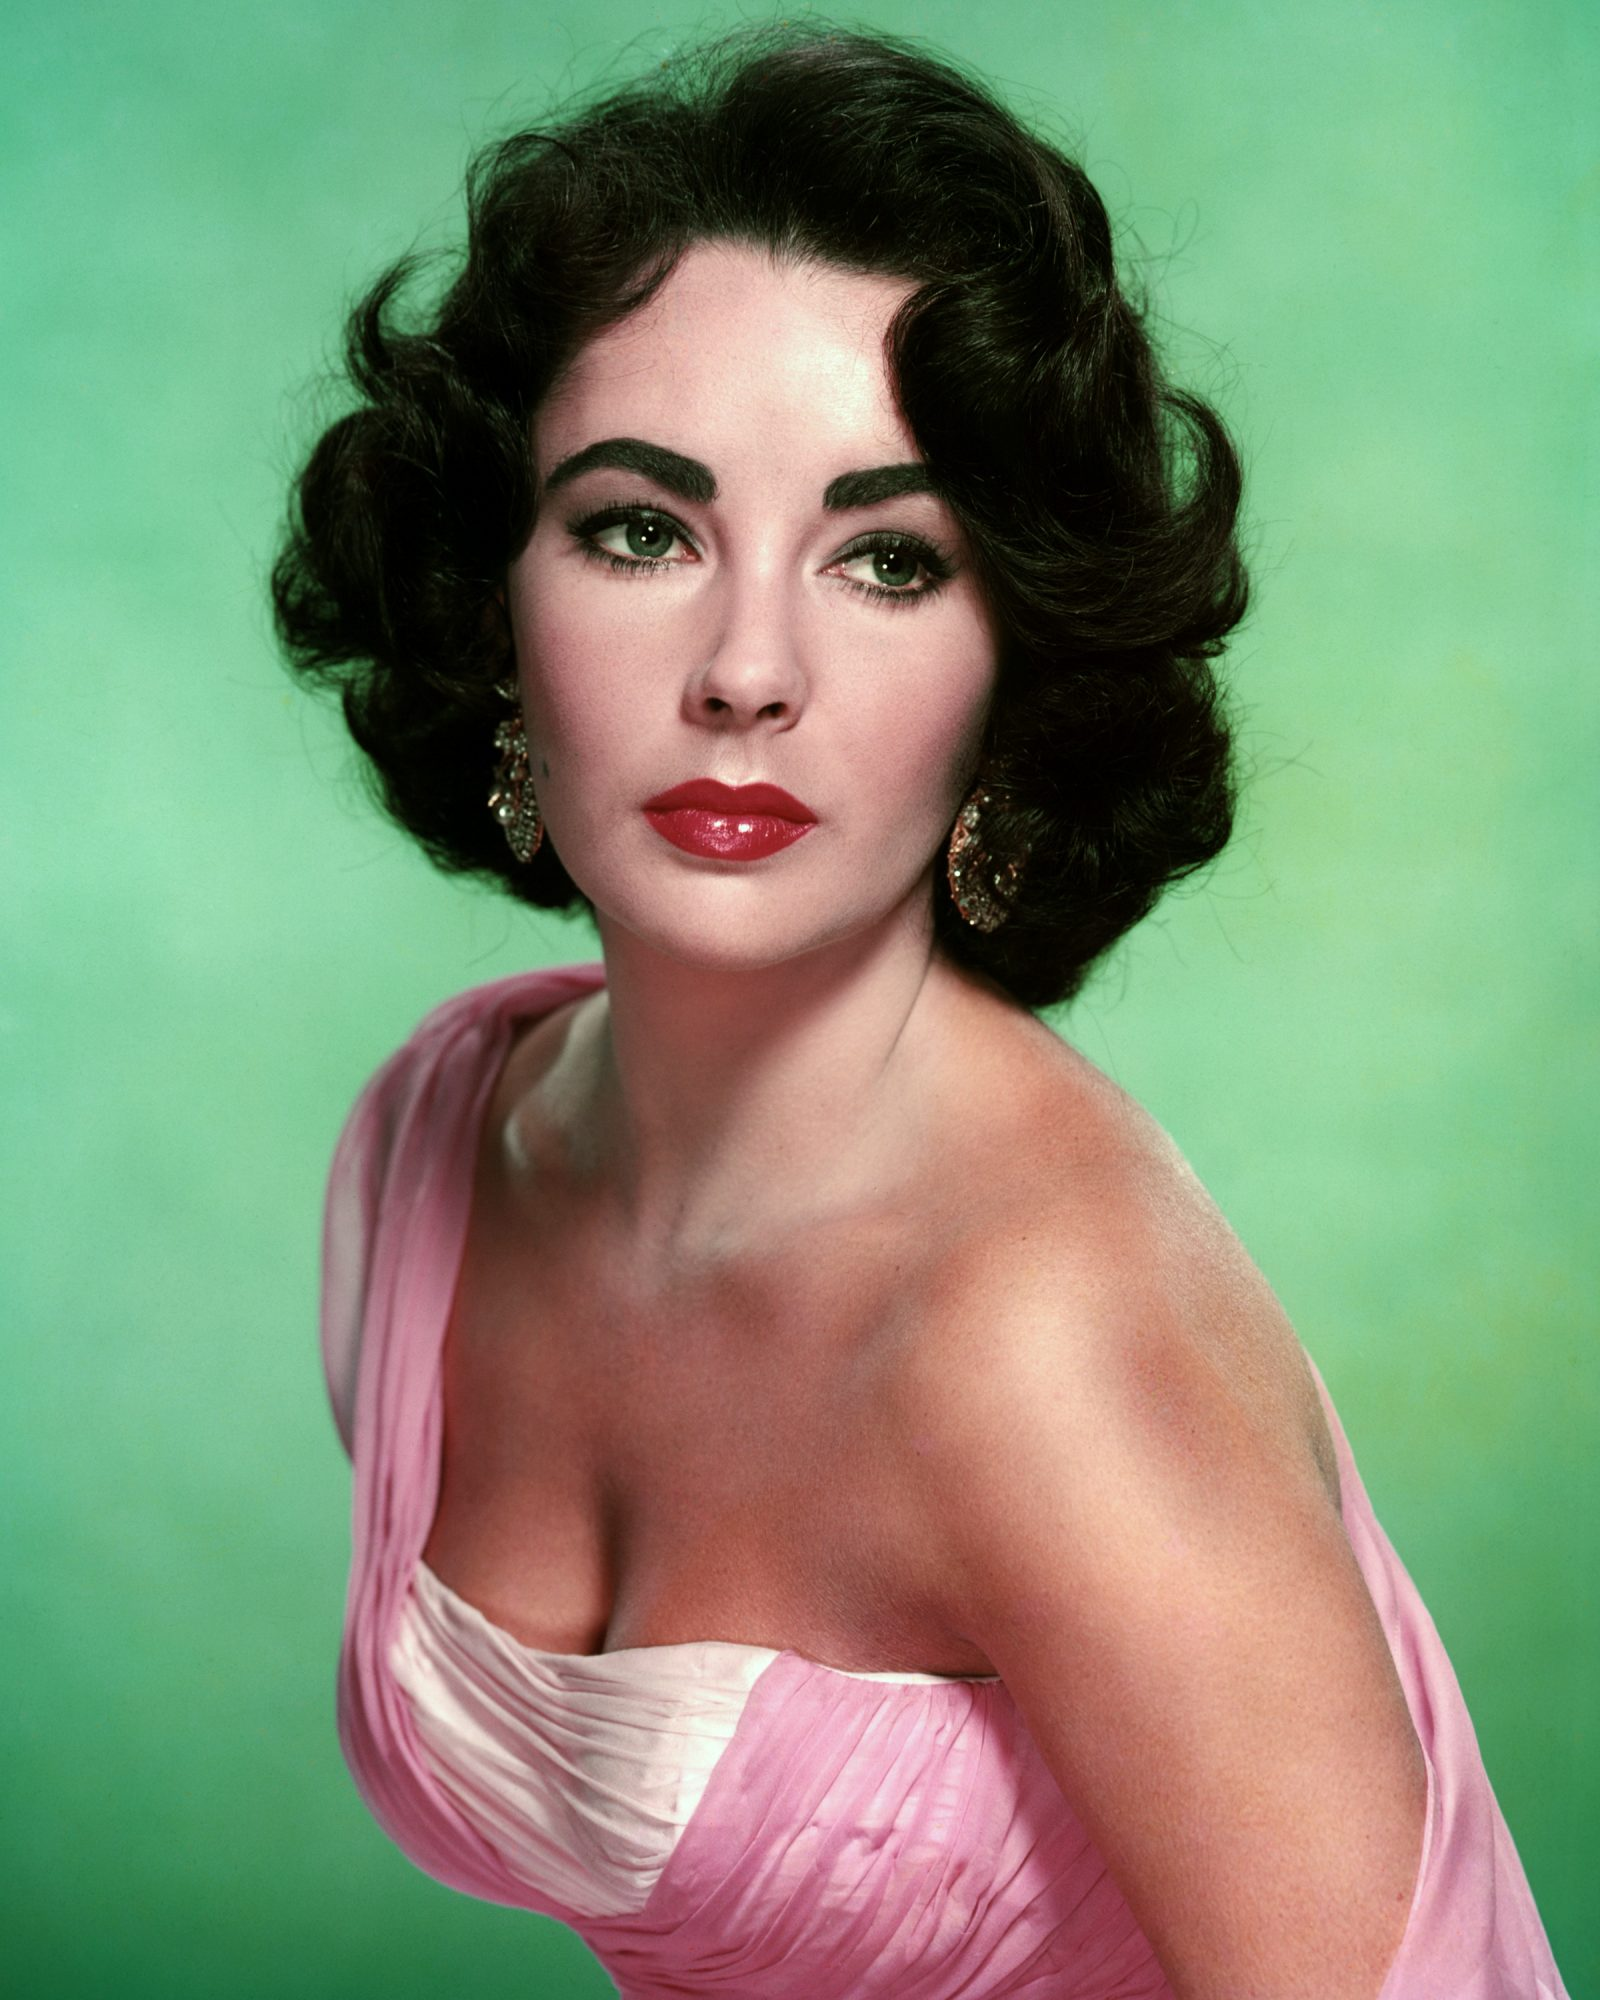 Beauty Tips Elizabeth Taylor Passed Down to Her Granddaughter